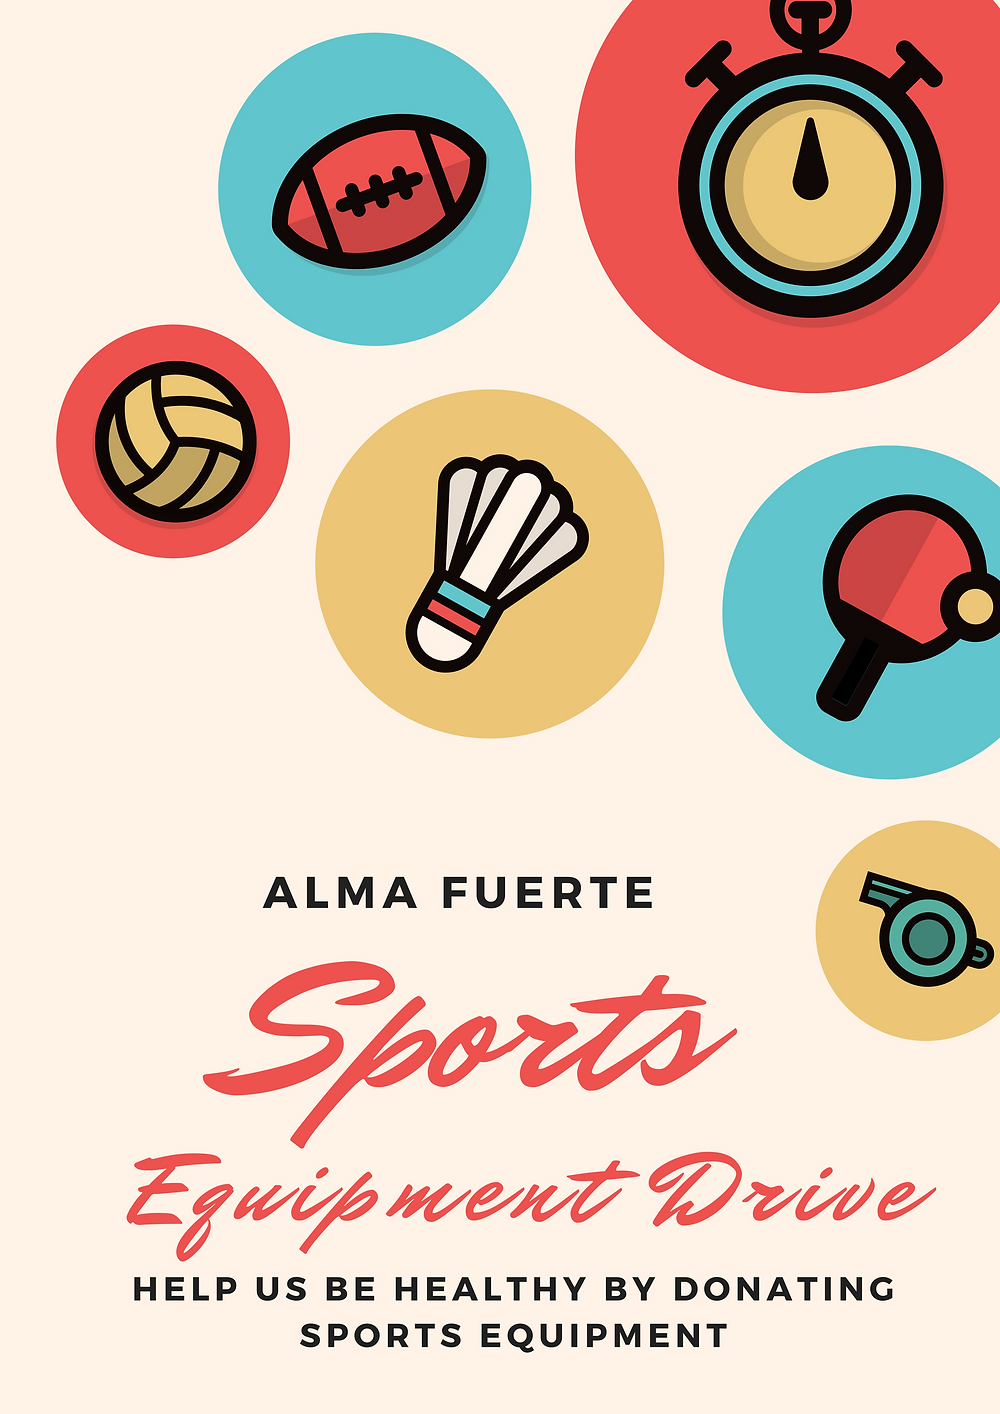 Alma Fuerte Sports Equipment Drive